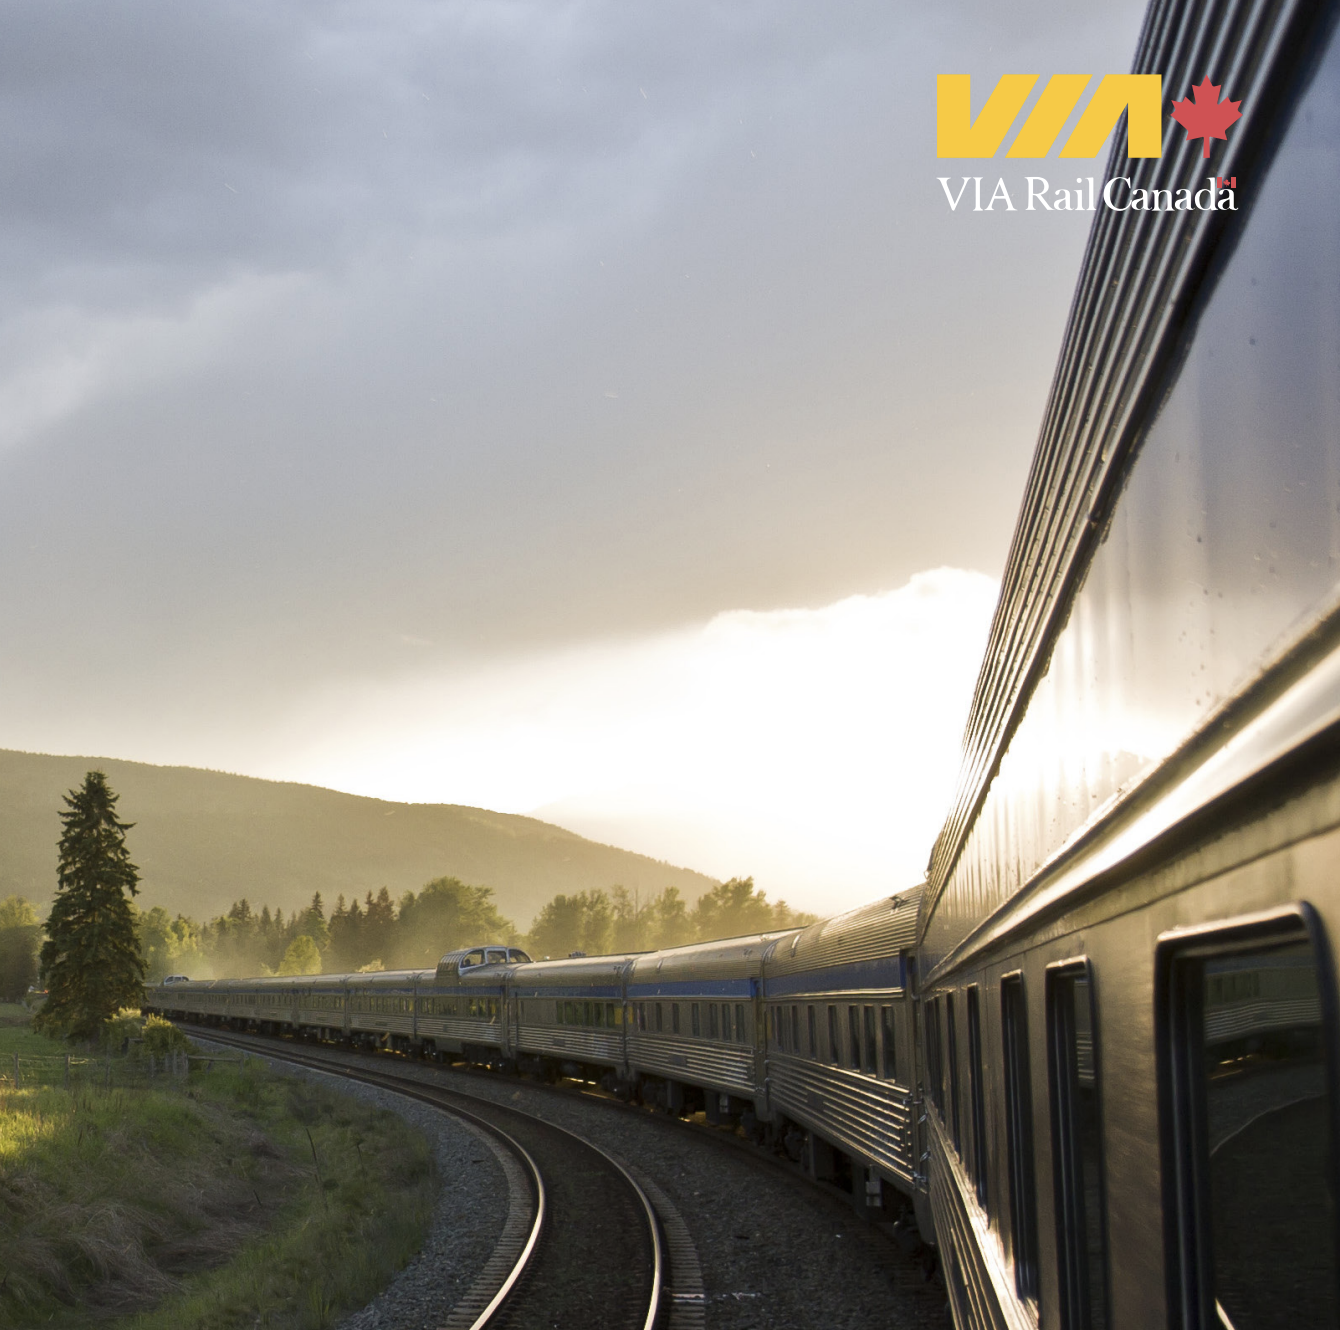 VIA Rail Canada ridership and revenue continue to grow